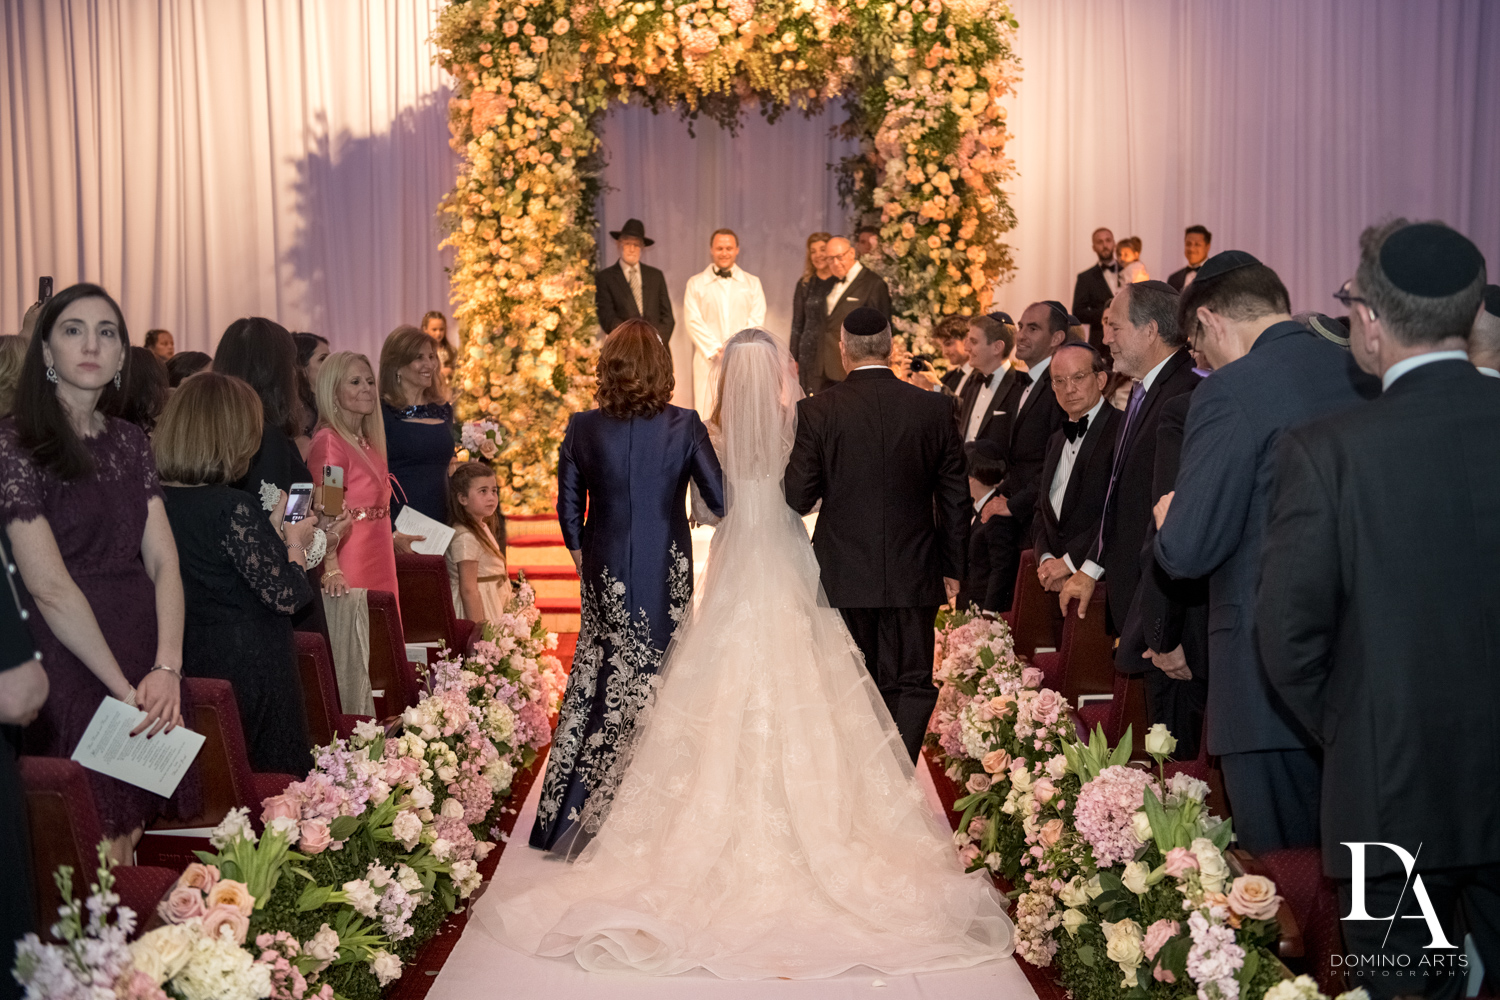 Floral aisle and chupah at Lavish Flowers & Crystals Wedding at Aventura Turnberry Jewish Center by Domino Arts Photography